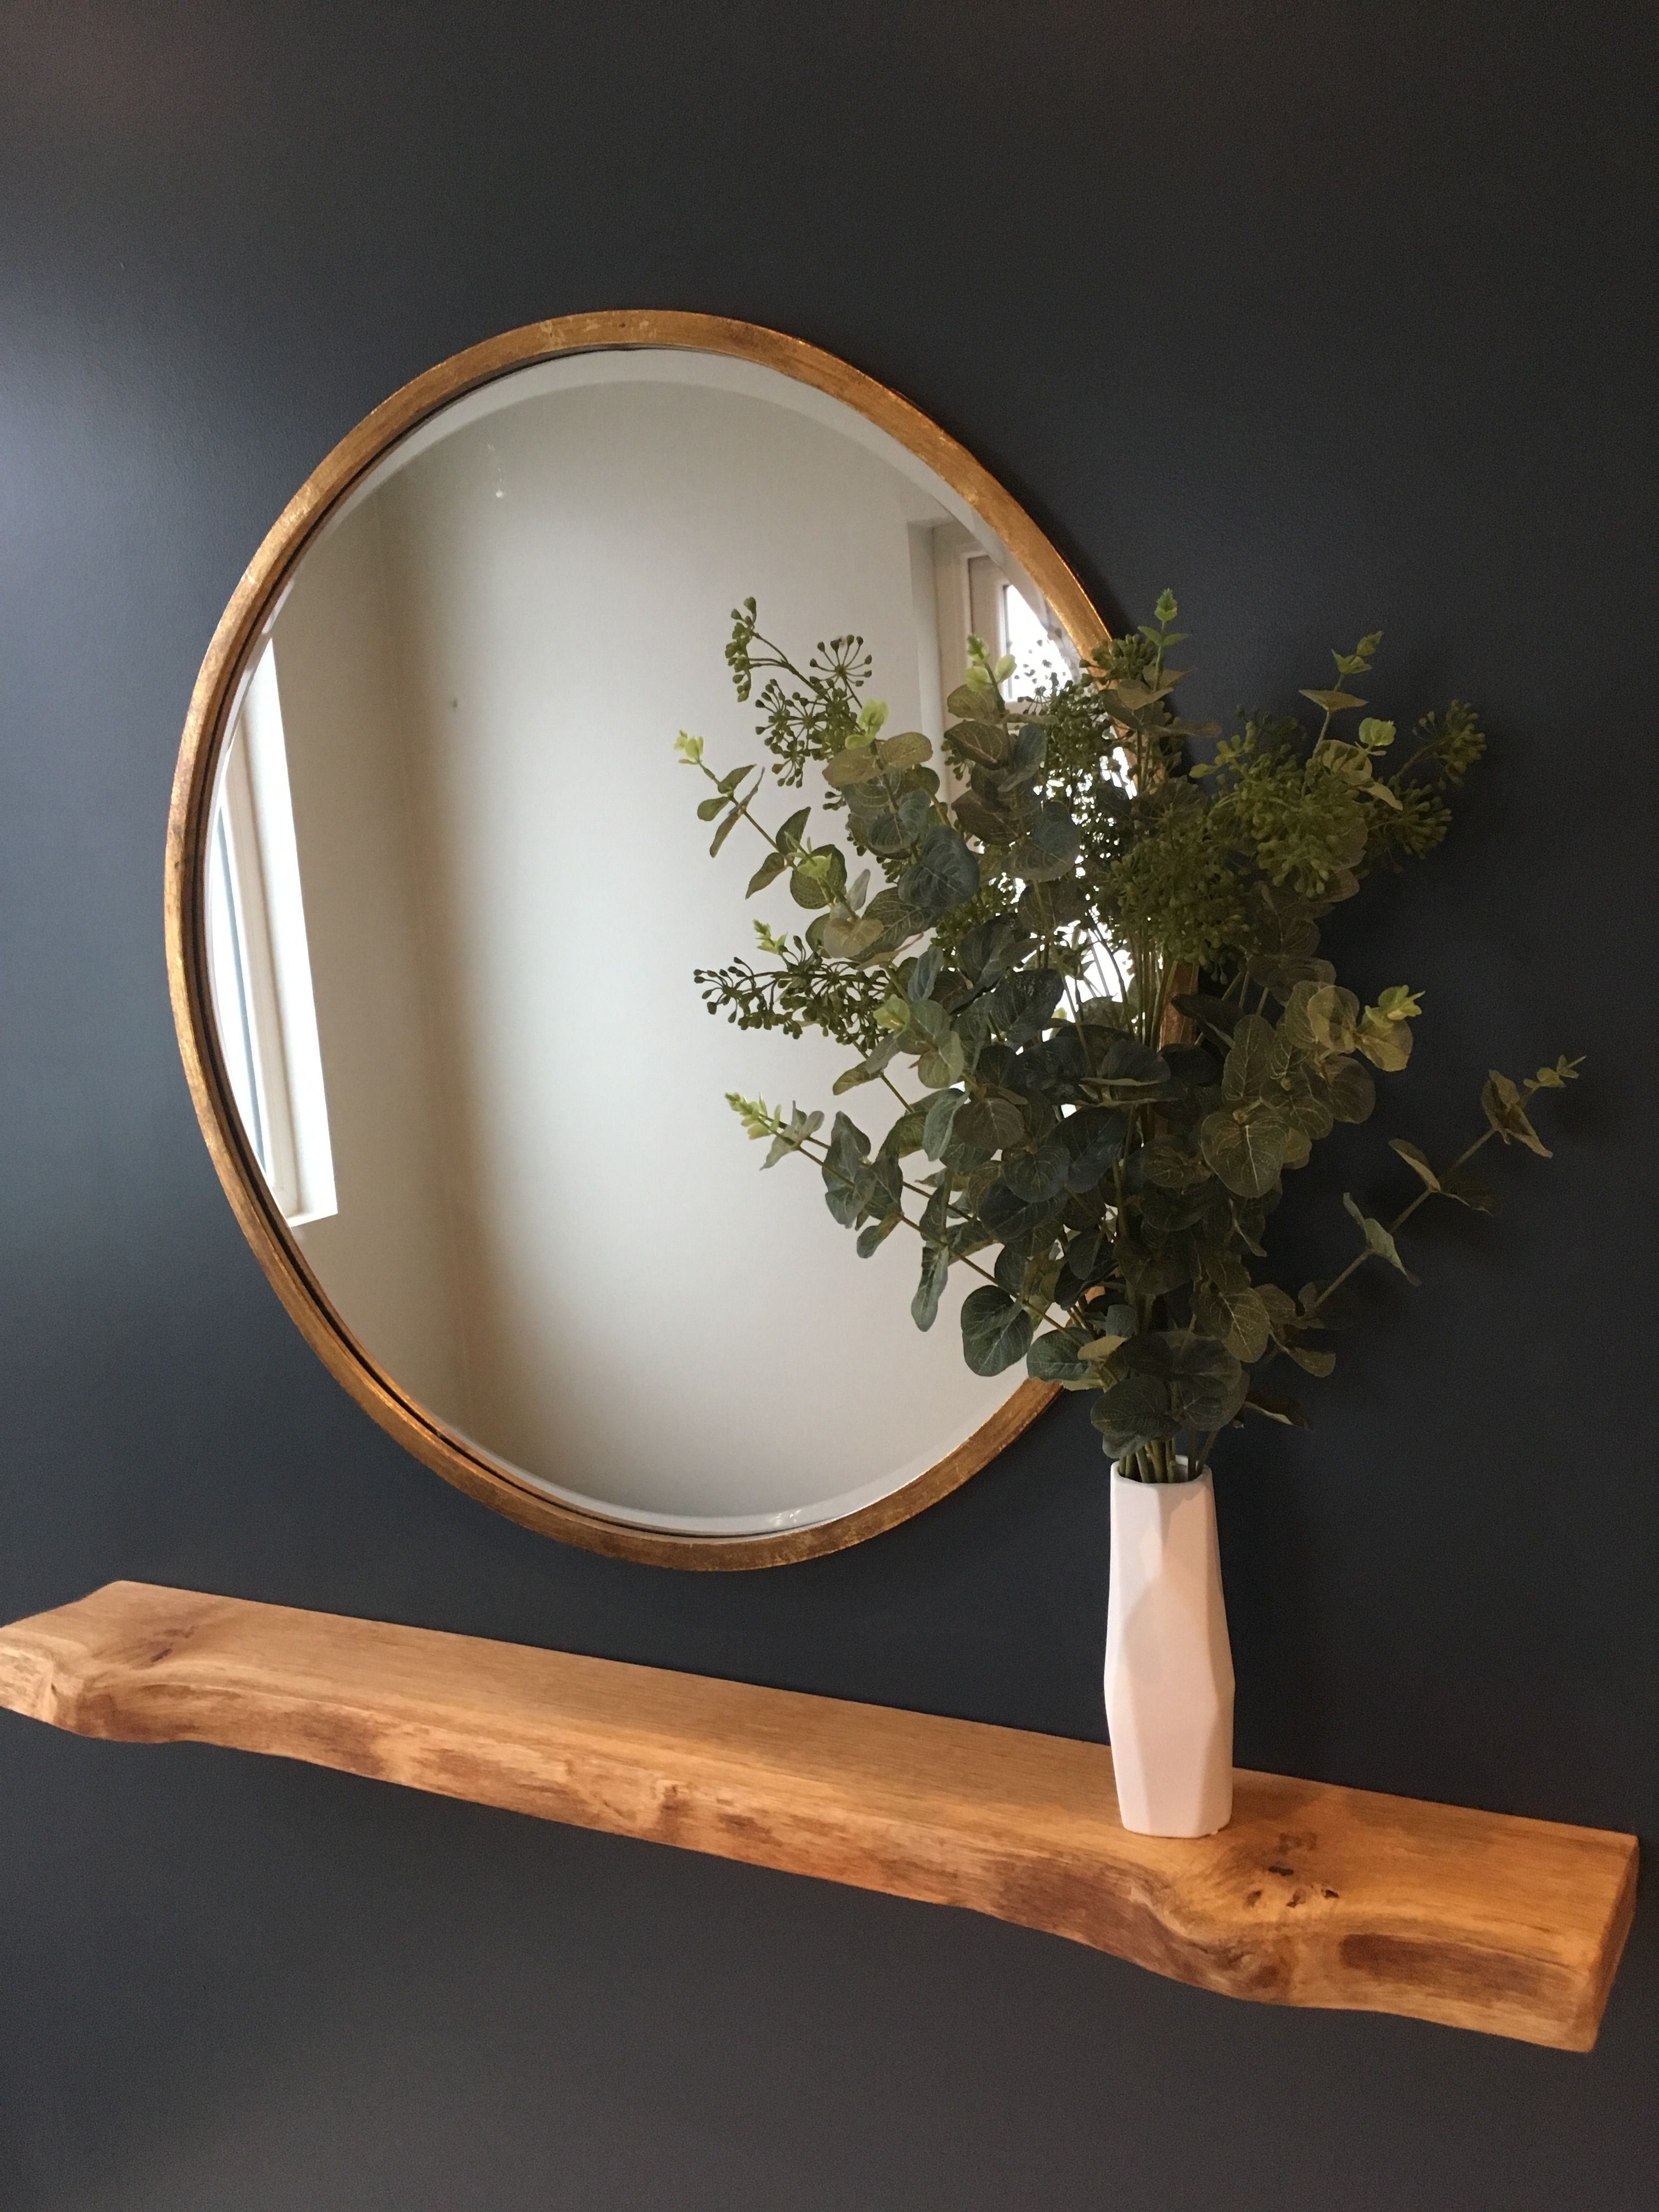 Bronze Round Mirror With Eucalyptus Leaves And A Floating Oak Shelf Hallway Inspiration Navy Hallway Decor Hallway Decorating Home Decor